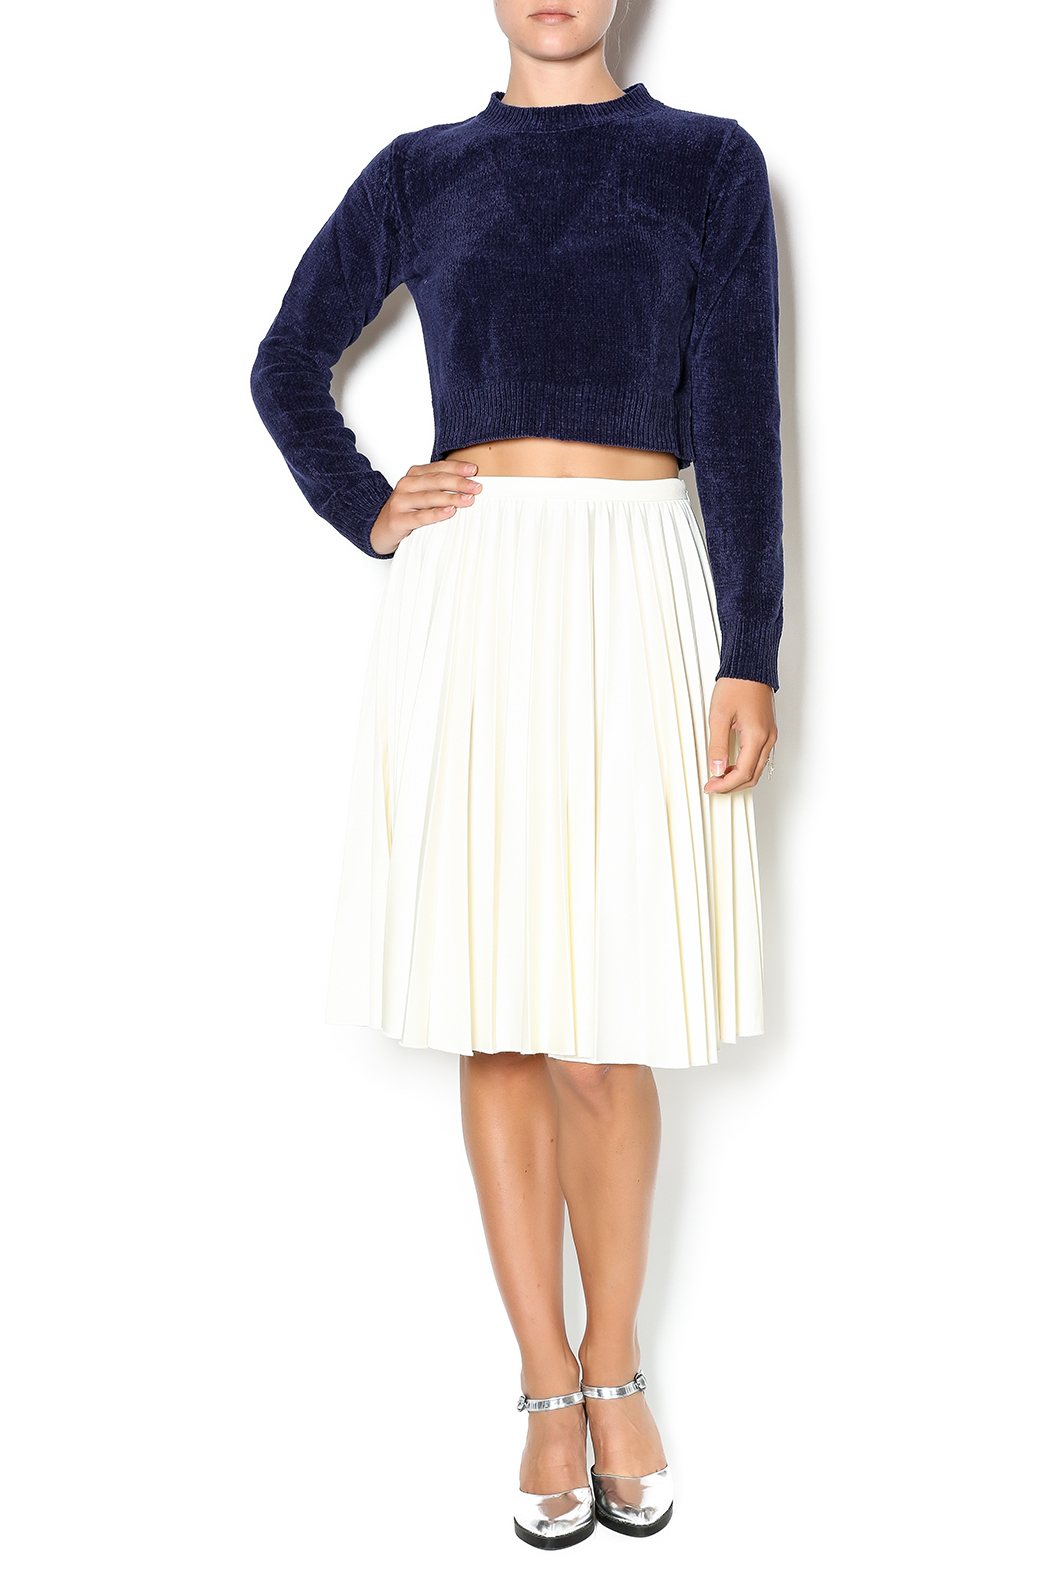 Babel Fair Navy Cropped Sweater from Nolita by Babel Fair Soho ...